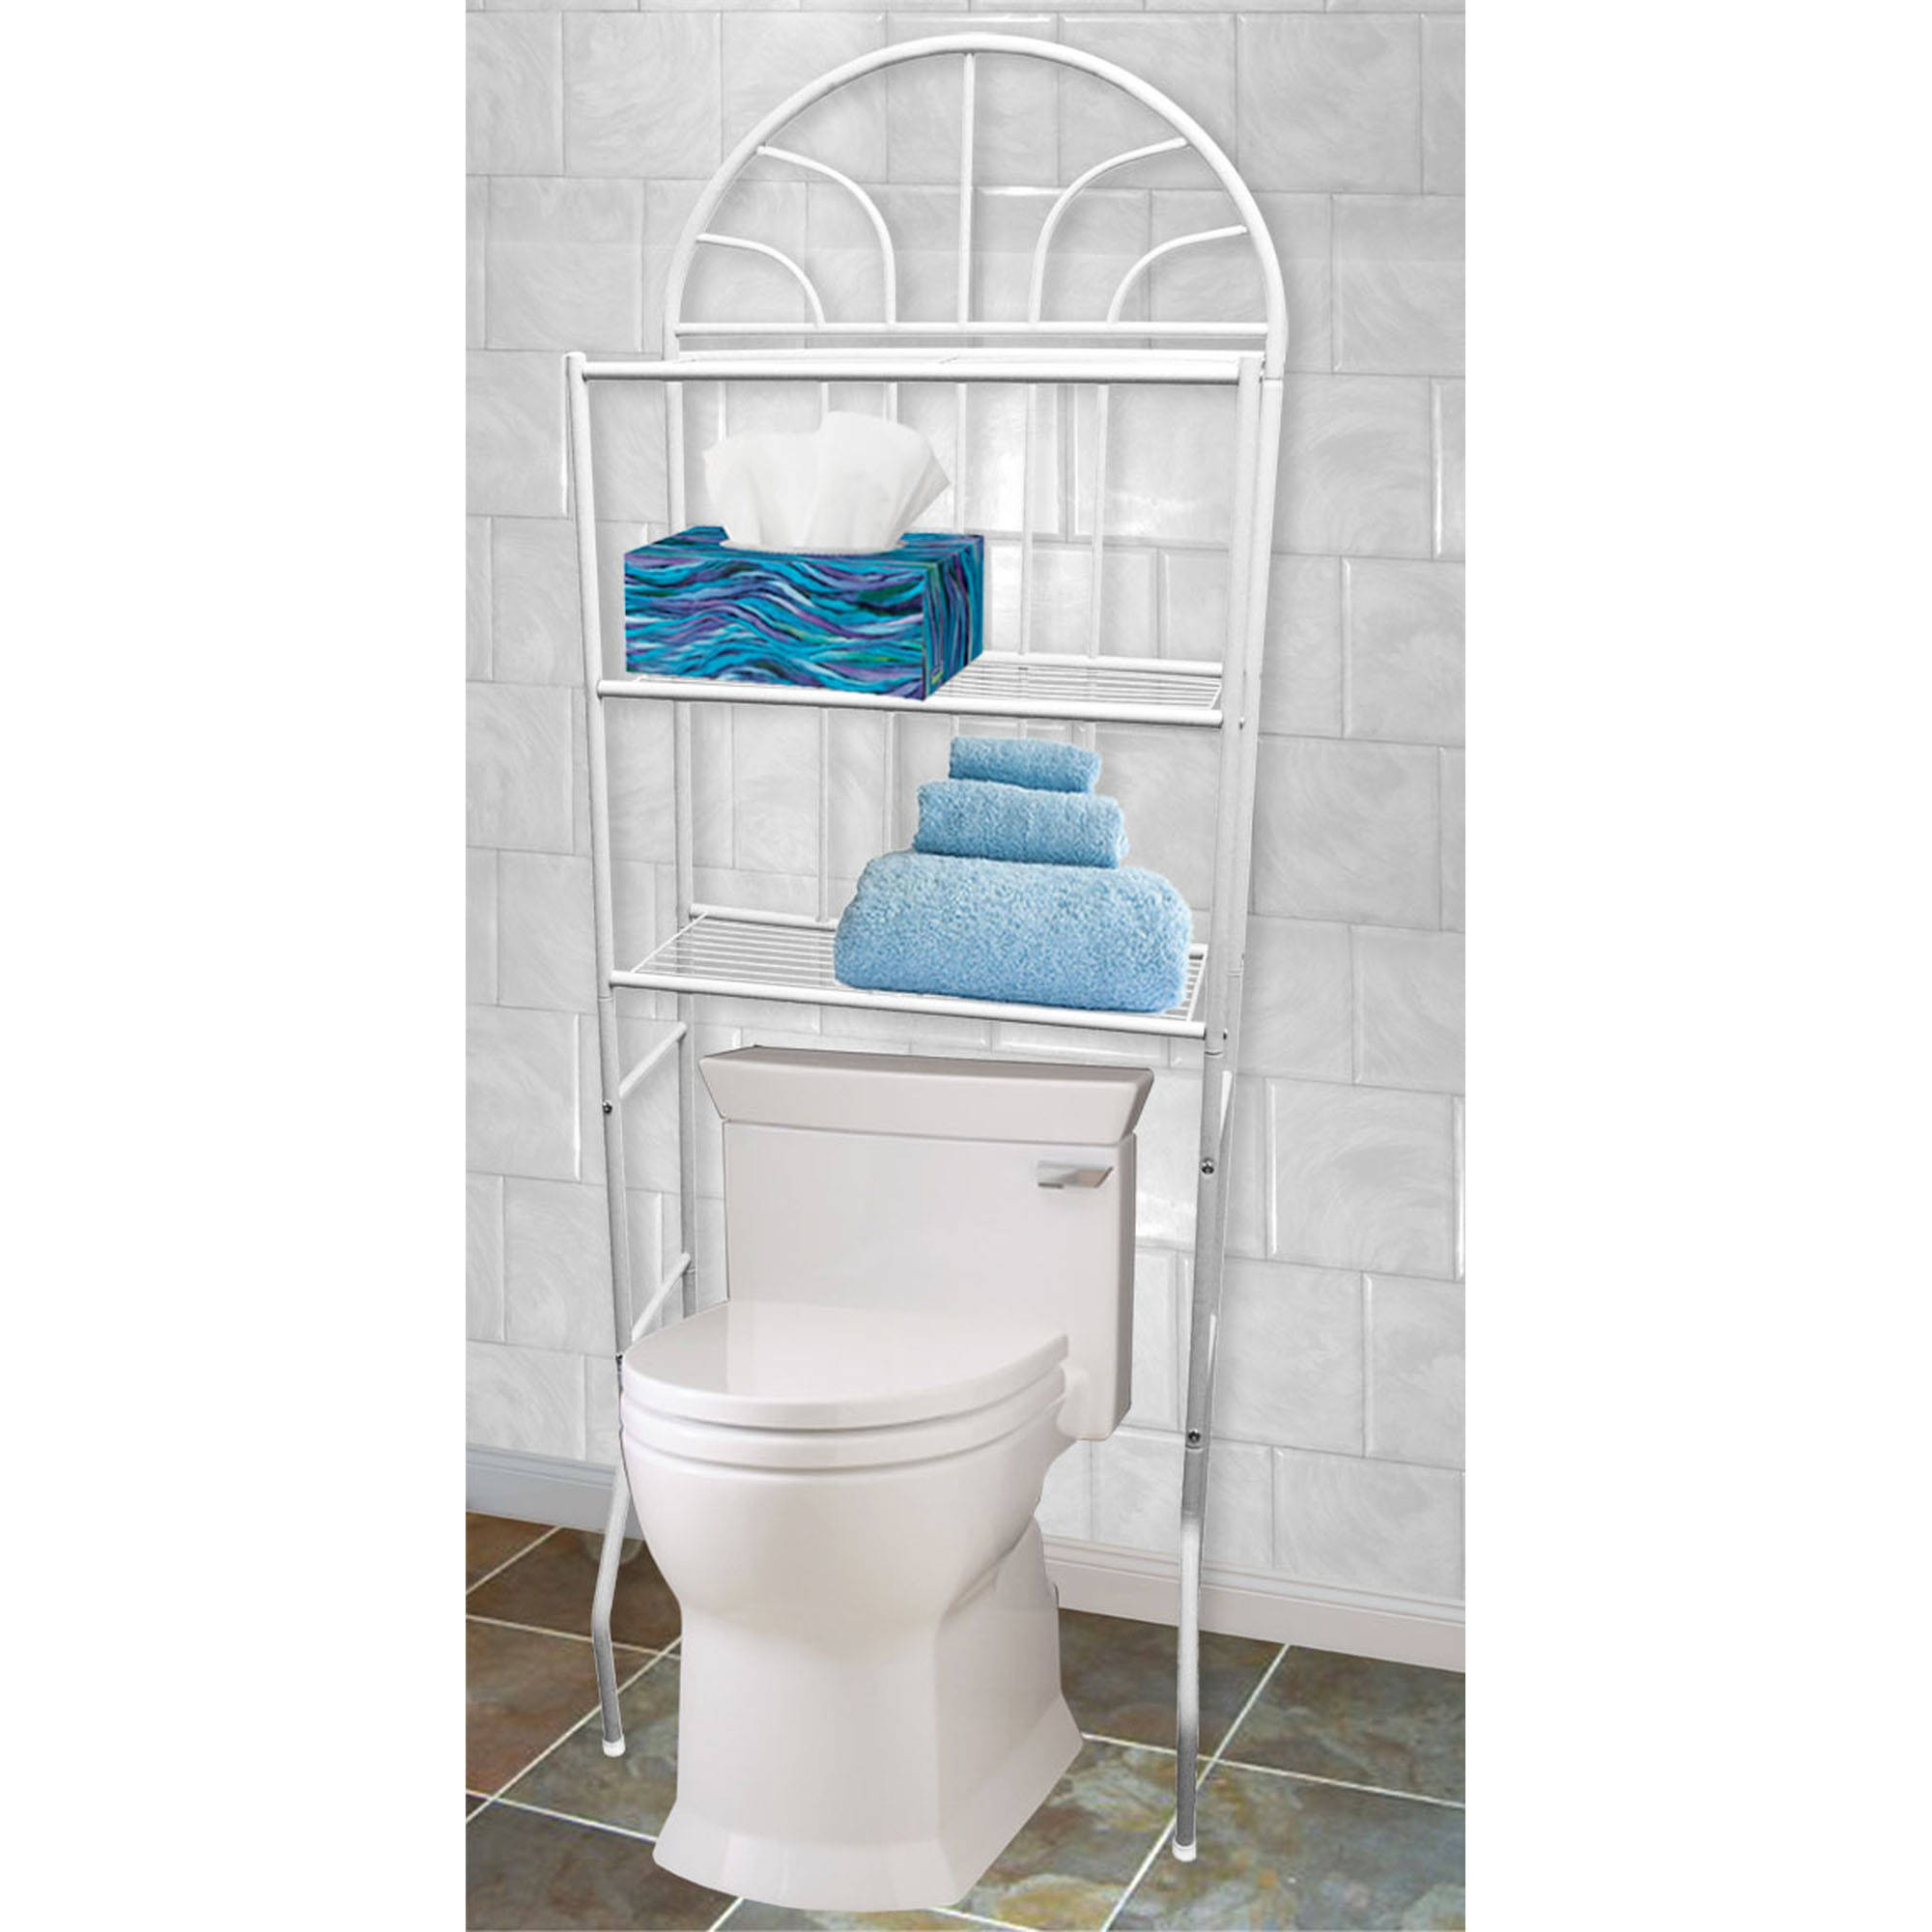 Home Basics 3-Shelf Steel Bathroom Space Saver, White